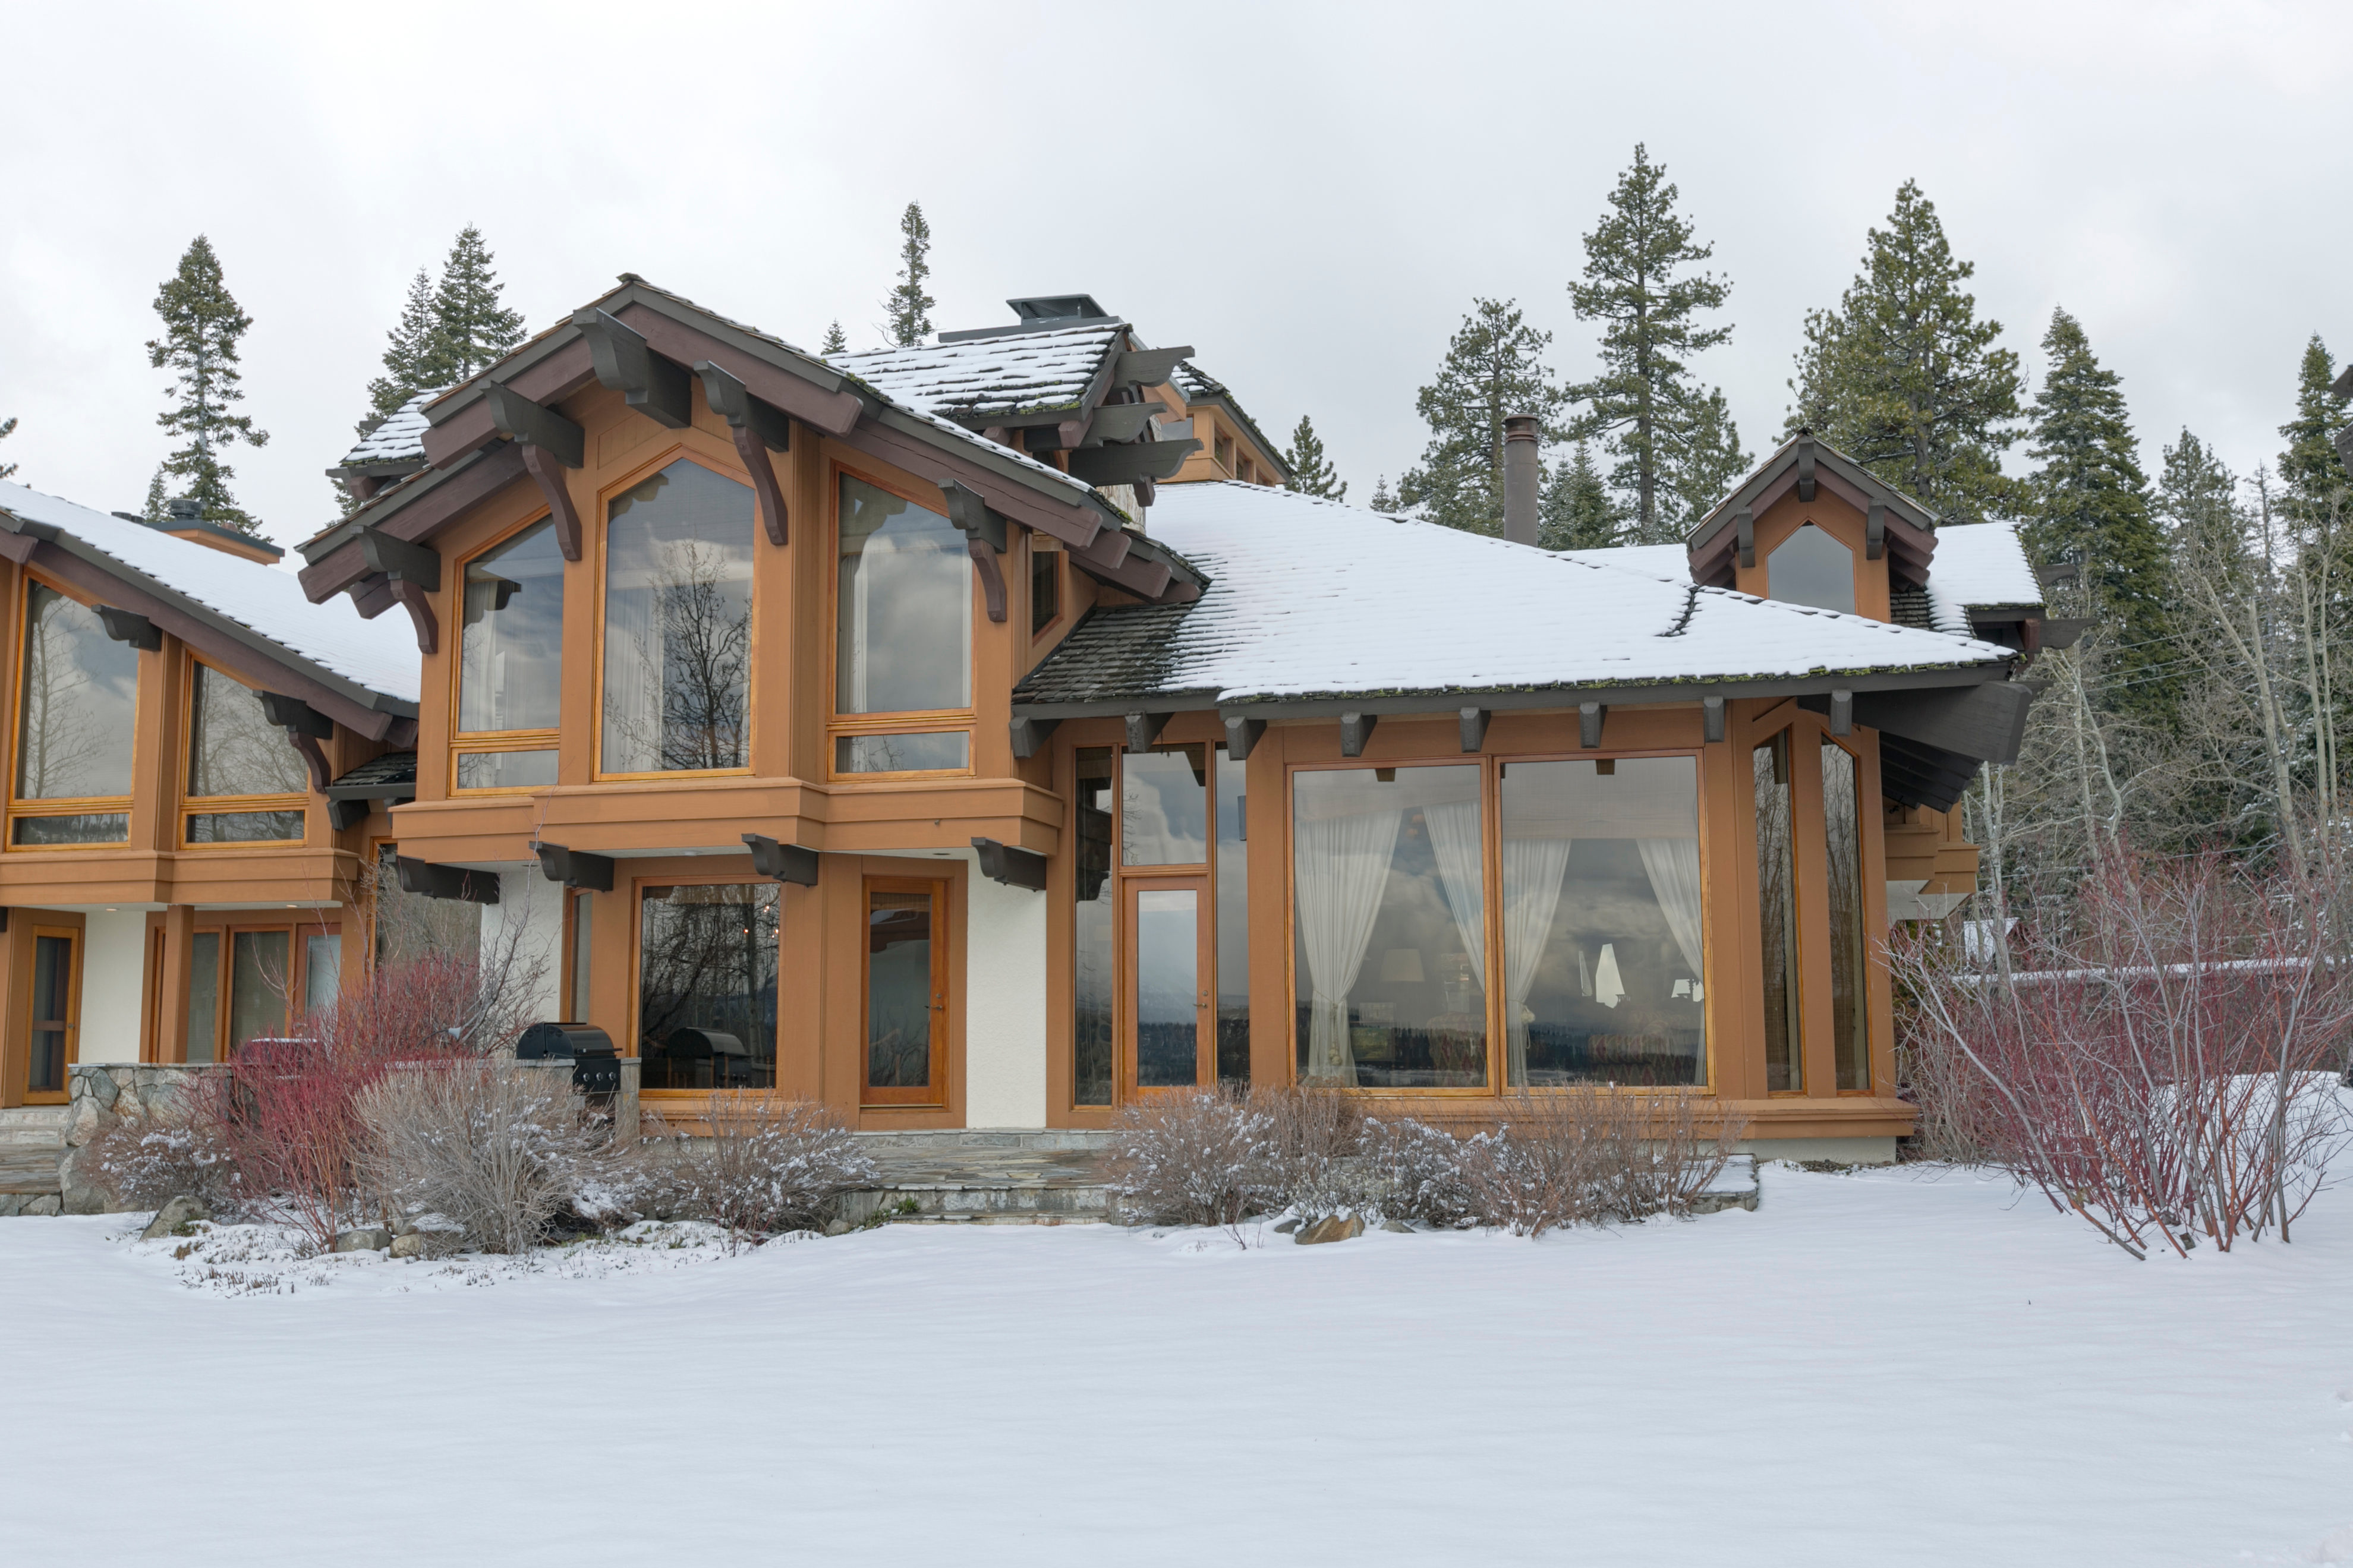 homes cabins dealers in building truckee lake ca original a log system tahoe start our cabin with home from page your builders to homelog finish built